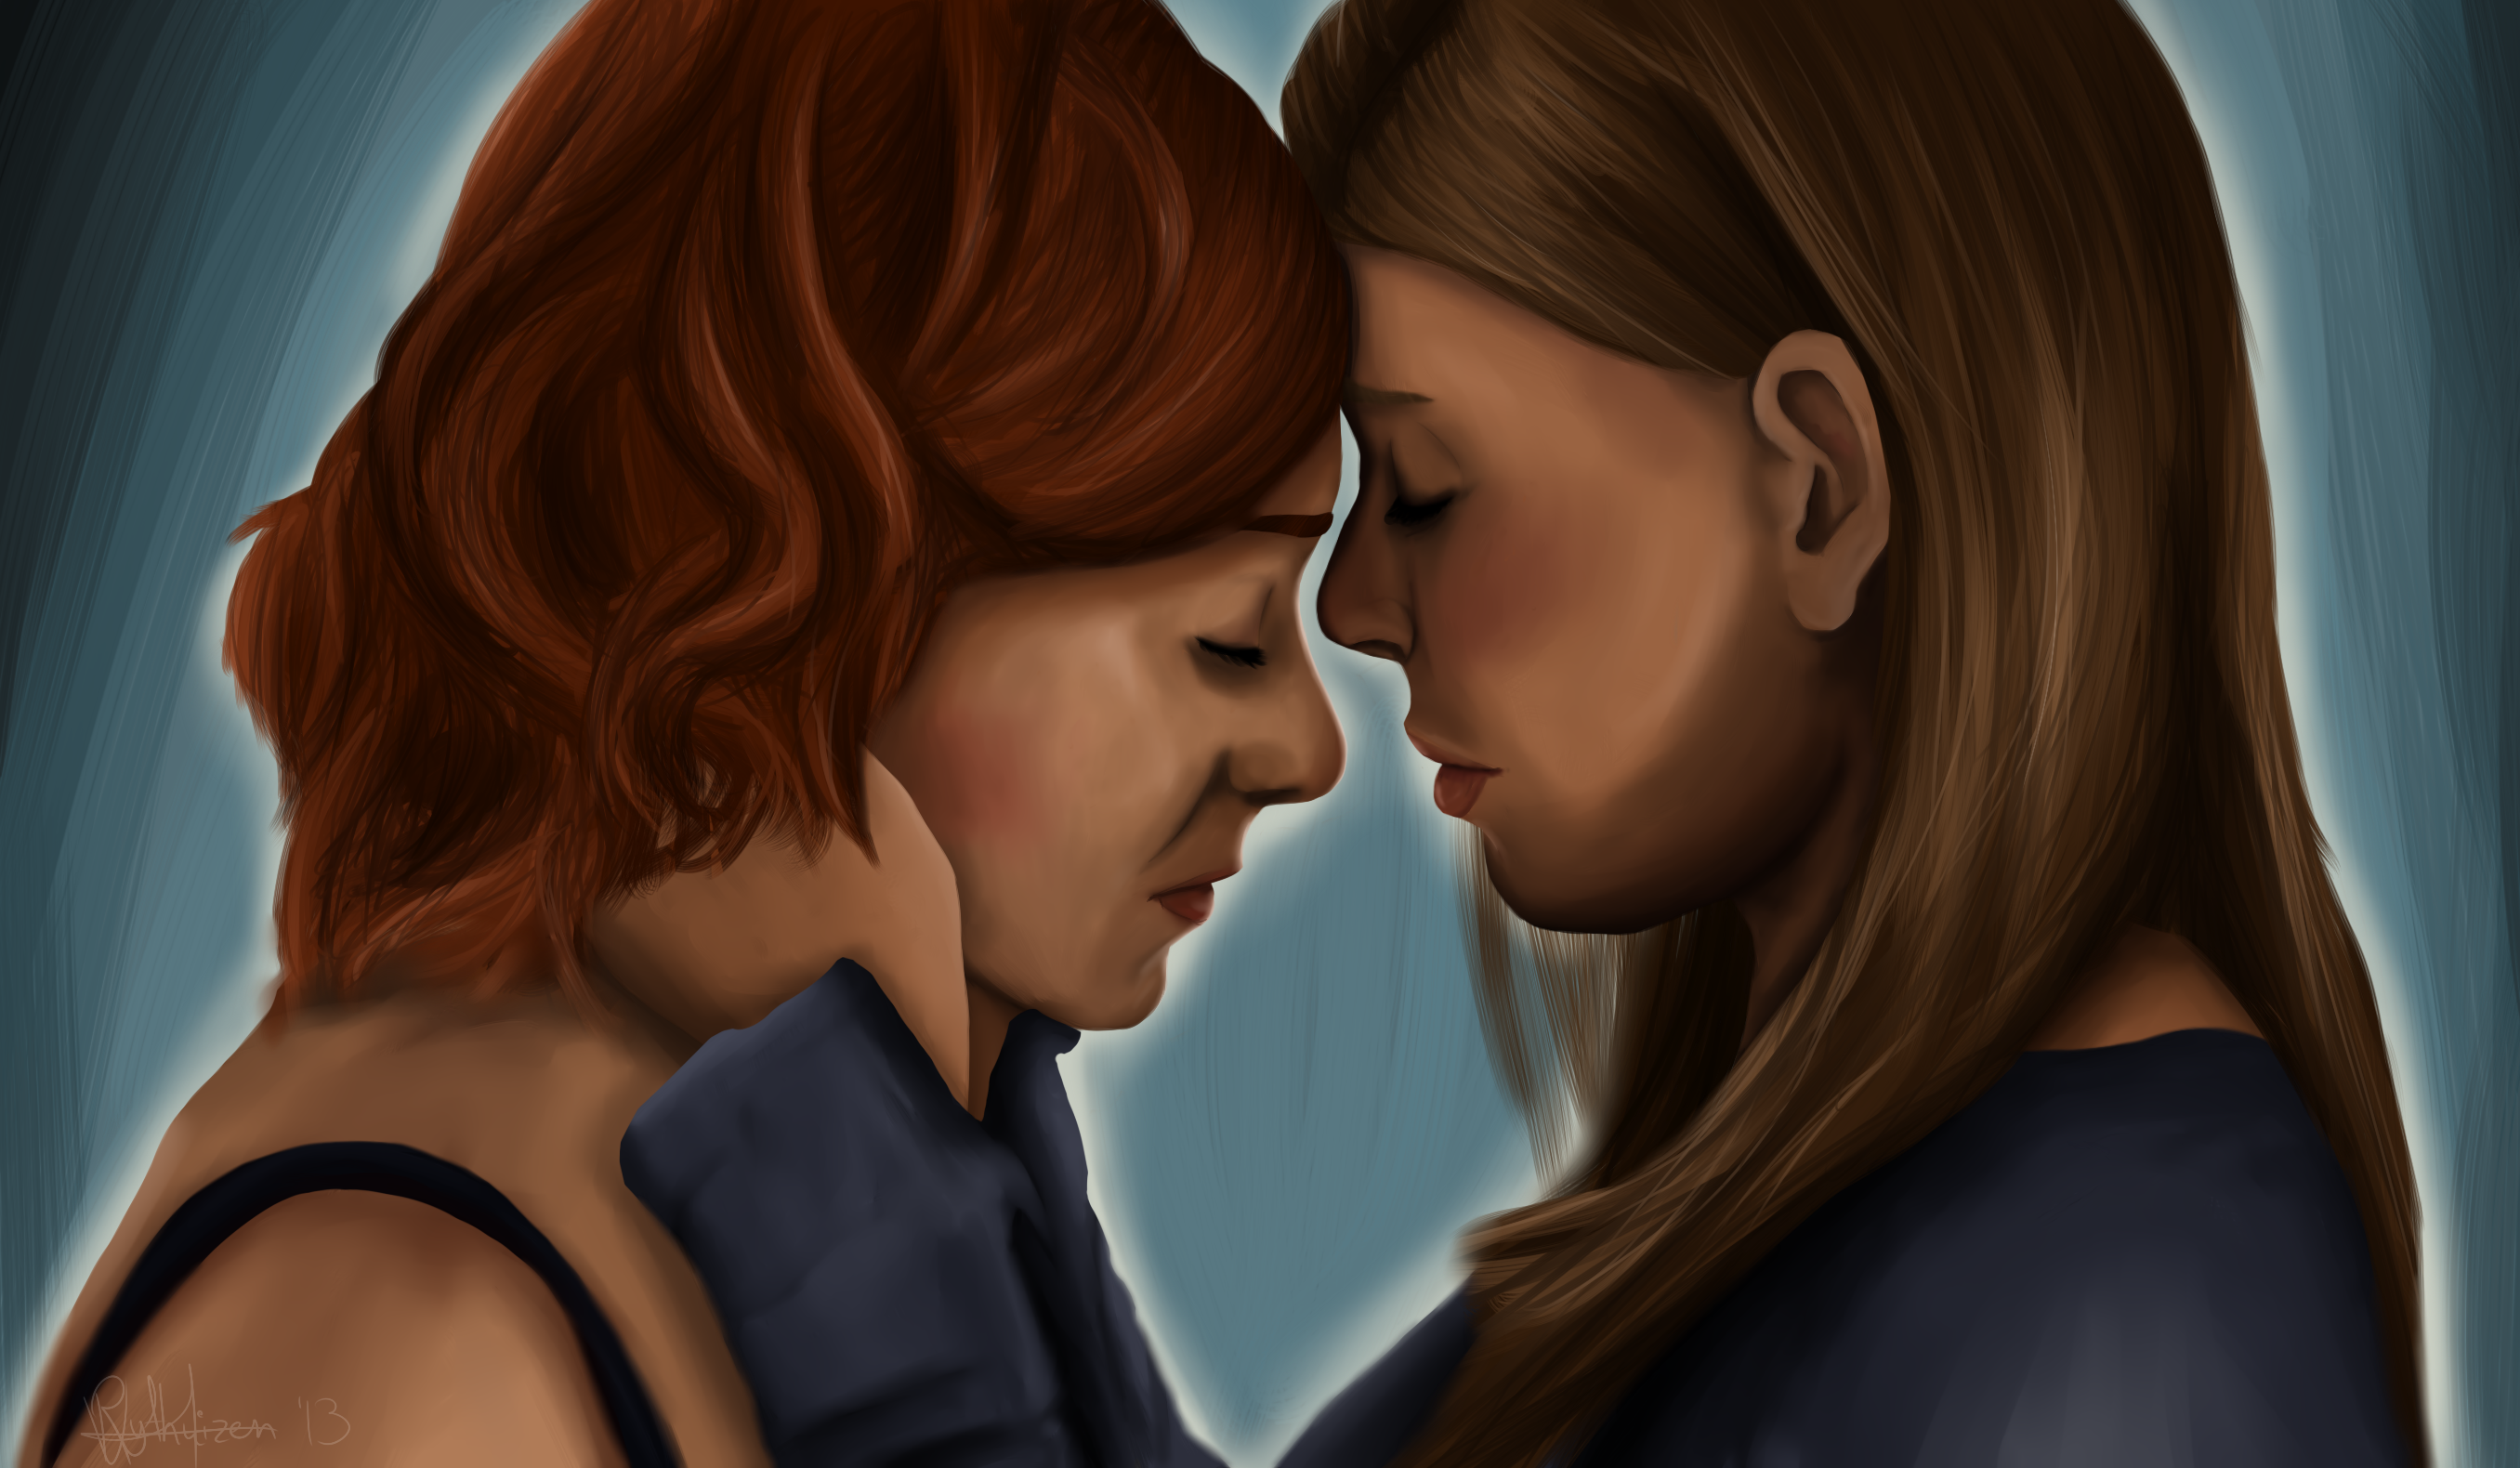 Fanart: Willow/Tara